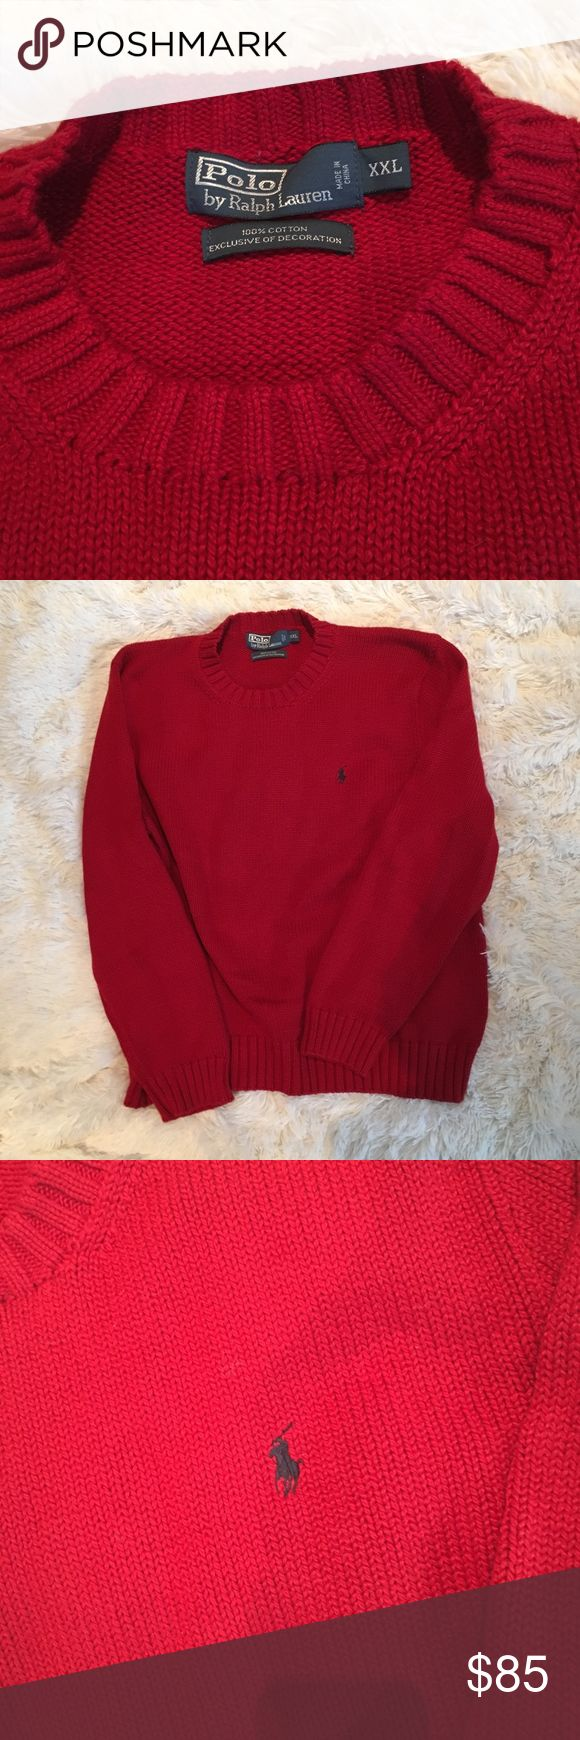 Polo by Ralph Lauren Cotton Sweater No snags, great condition, worn never, could be a great oversized sweater over some leggings for the lady's item is Mens Polo by Ralph Lauren Sweaters Crewneck